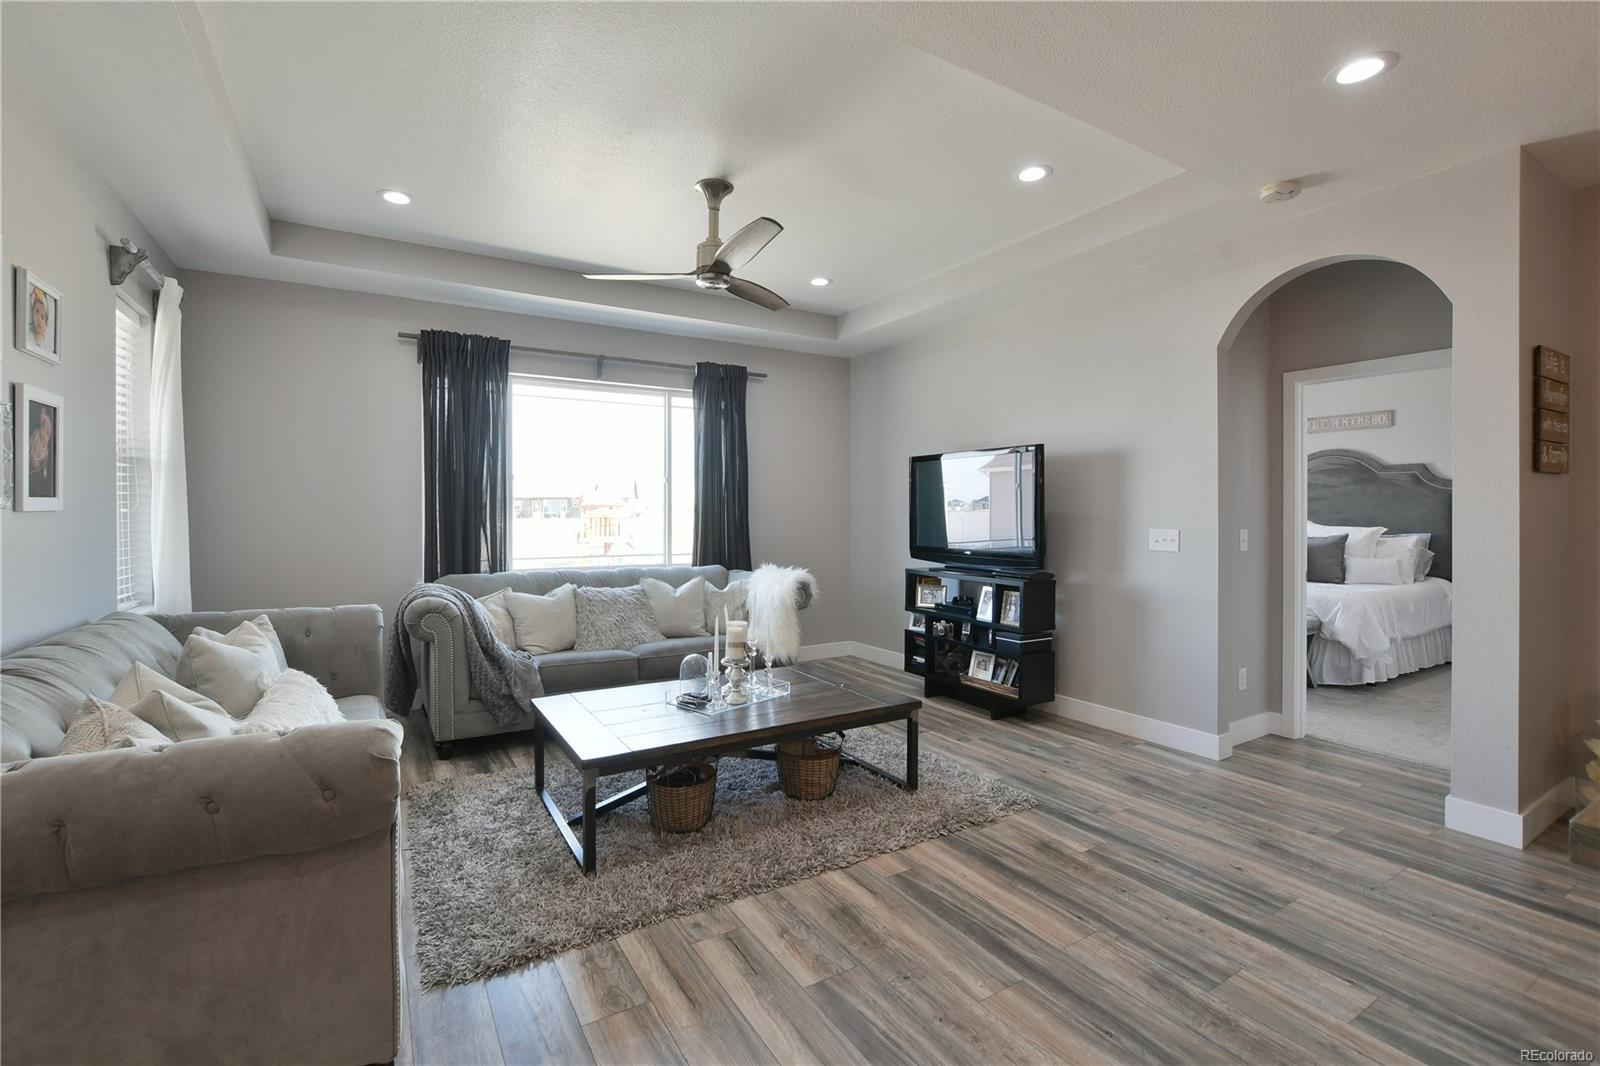 Great room with coffered ceiling, recessed lighting and ceiling fan